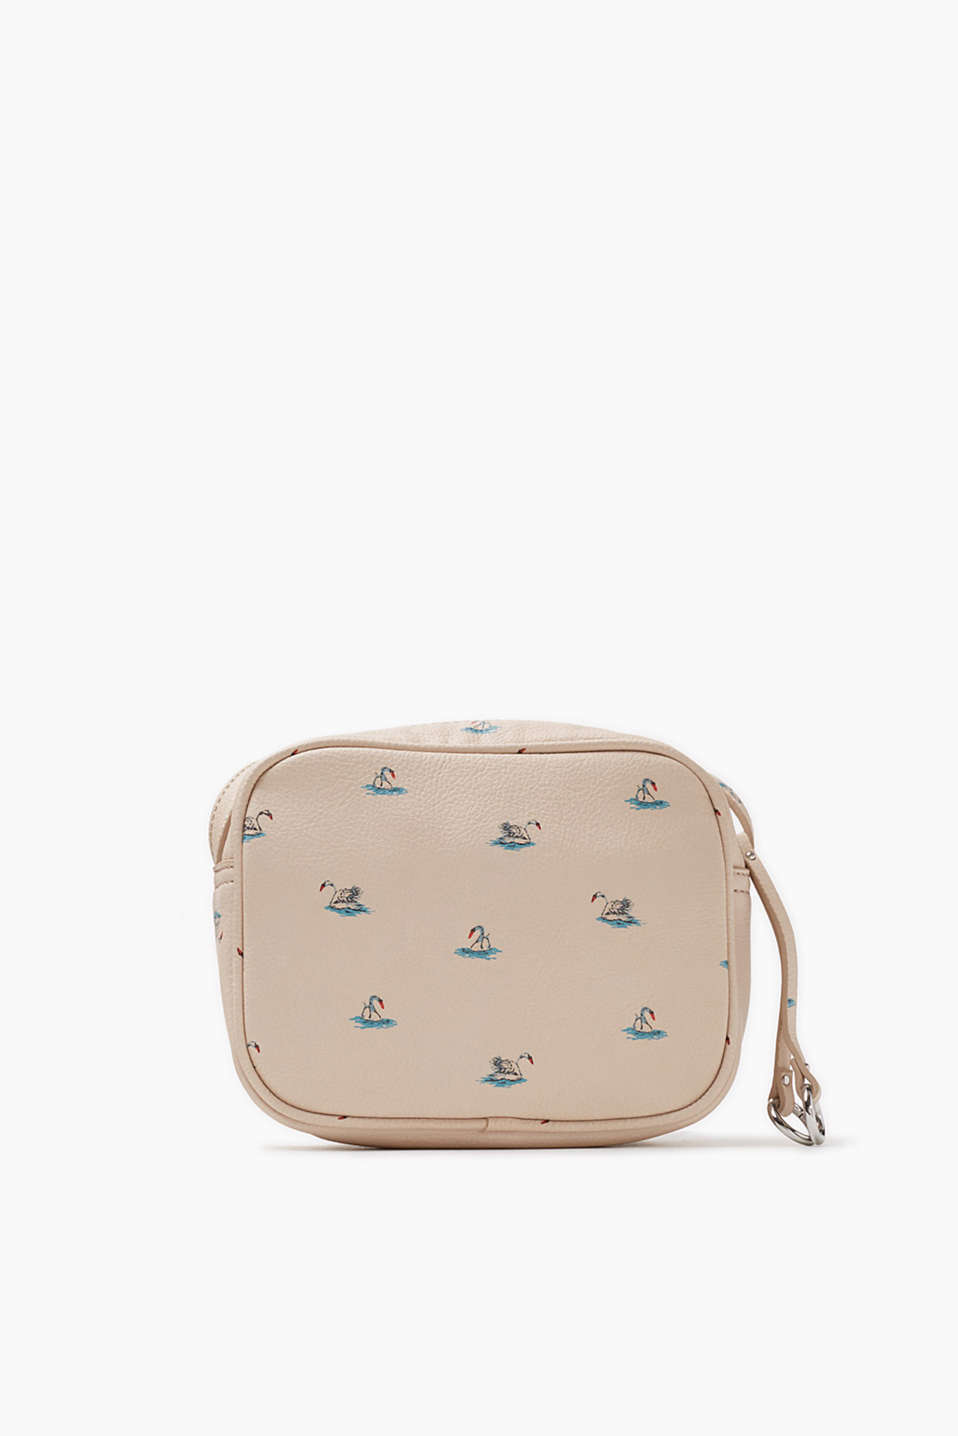 Plain coloured or with a swan print Stunning imitation leather shoulder bag (approx. 19 x 15 x 7 cm)